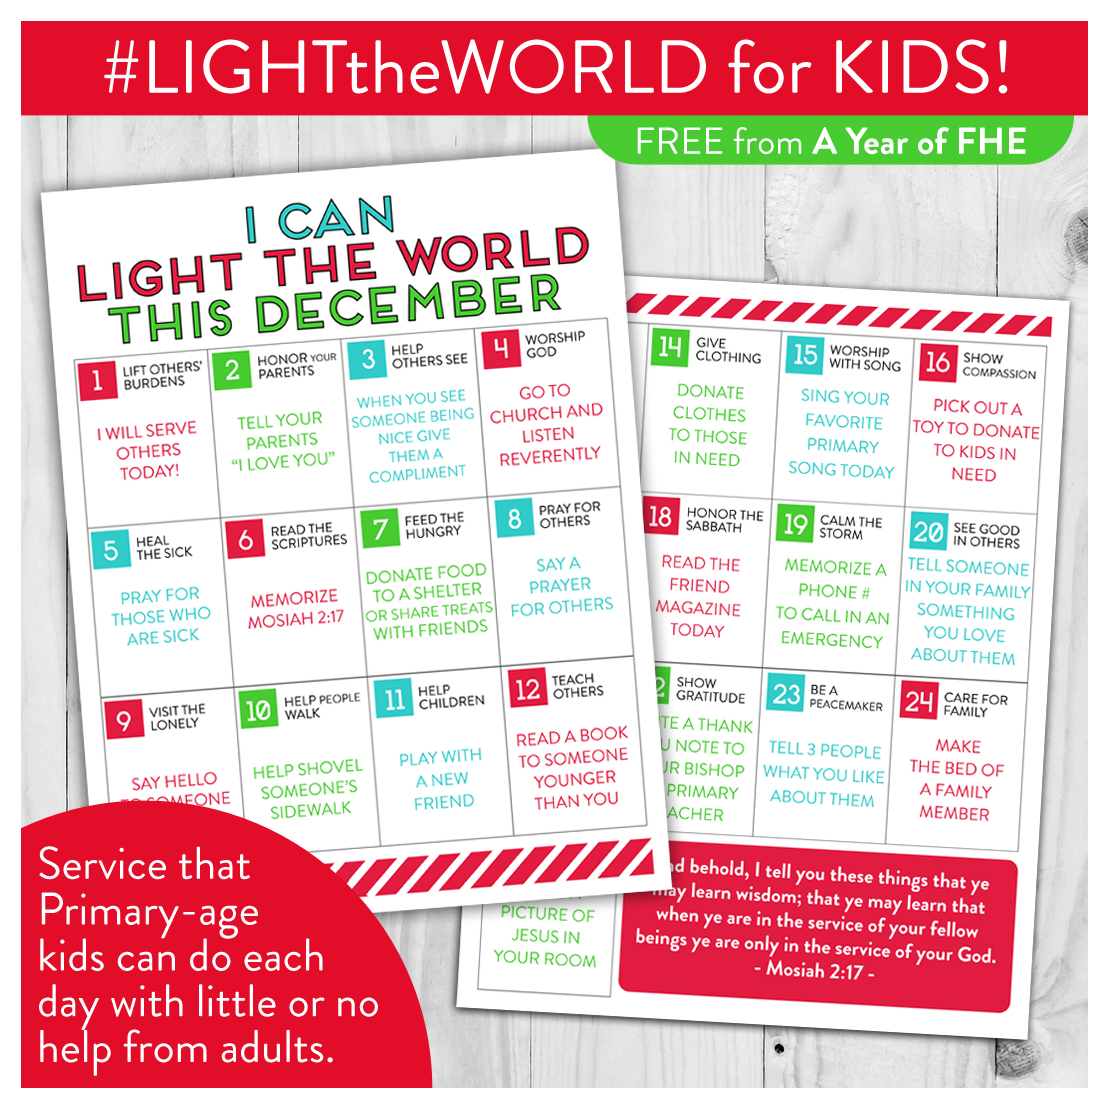 FREE DOWNLOAD // A great Service Calendar from the #LIGHTtheWORLD campaign made especially for KIDS!  Each day has a simple task that Primary-age children can do with little or no help from adults.  What a great way to get small kids involved! #LDS